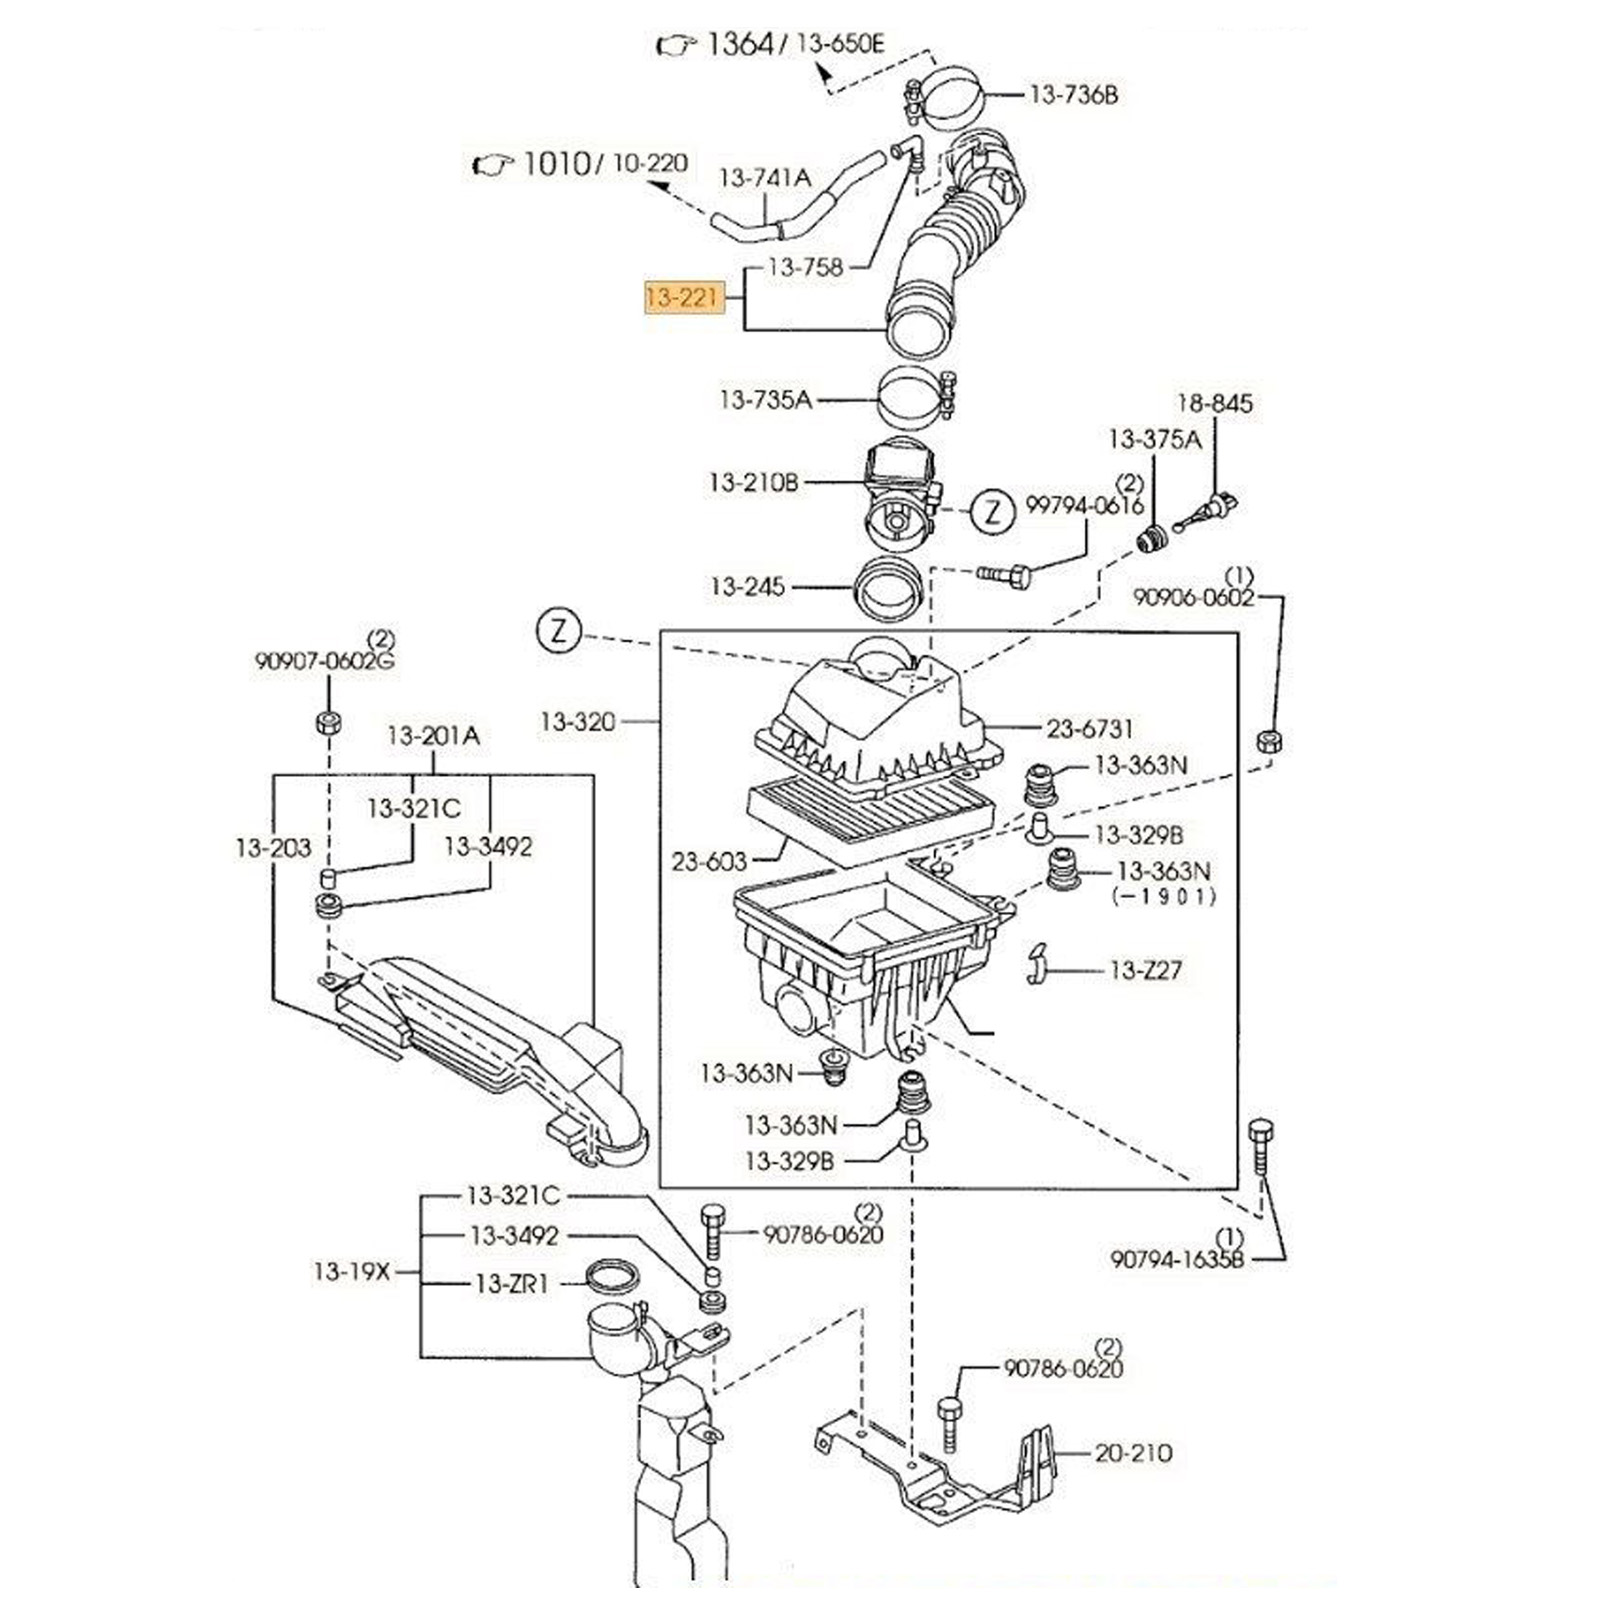 Nissan navara d40 central locking wiring diagram wiring diagram